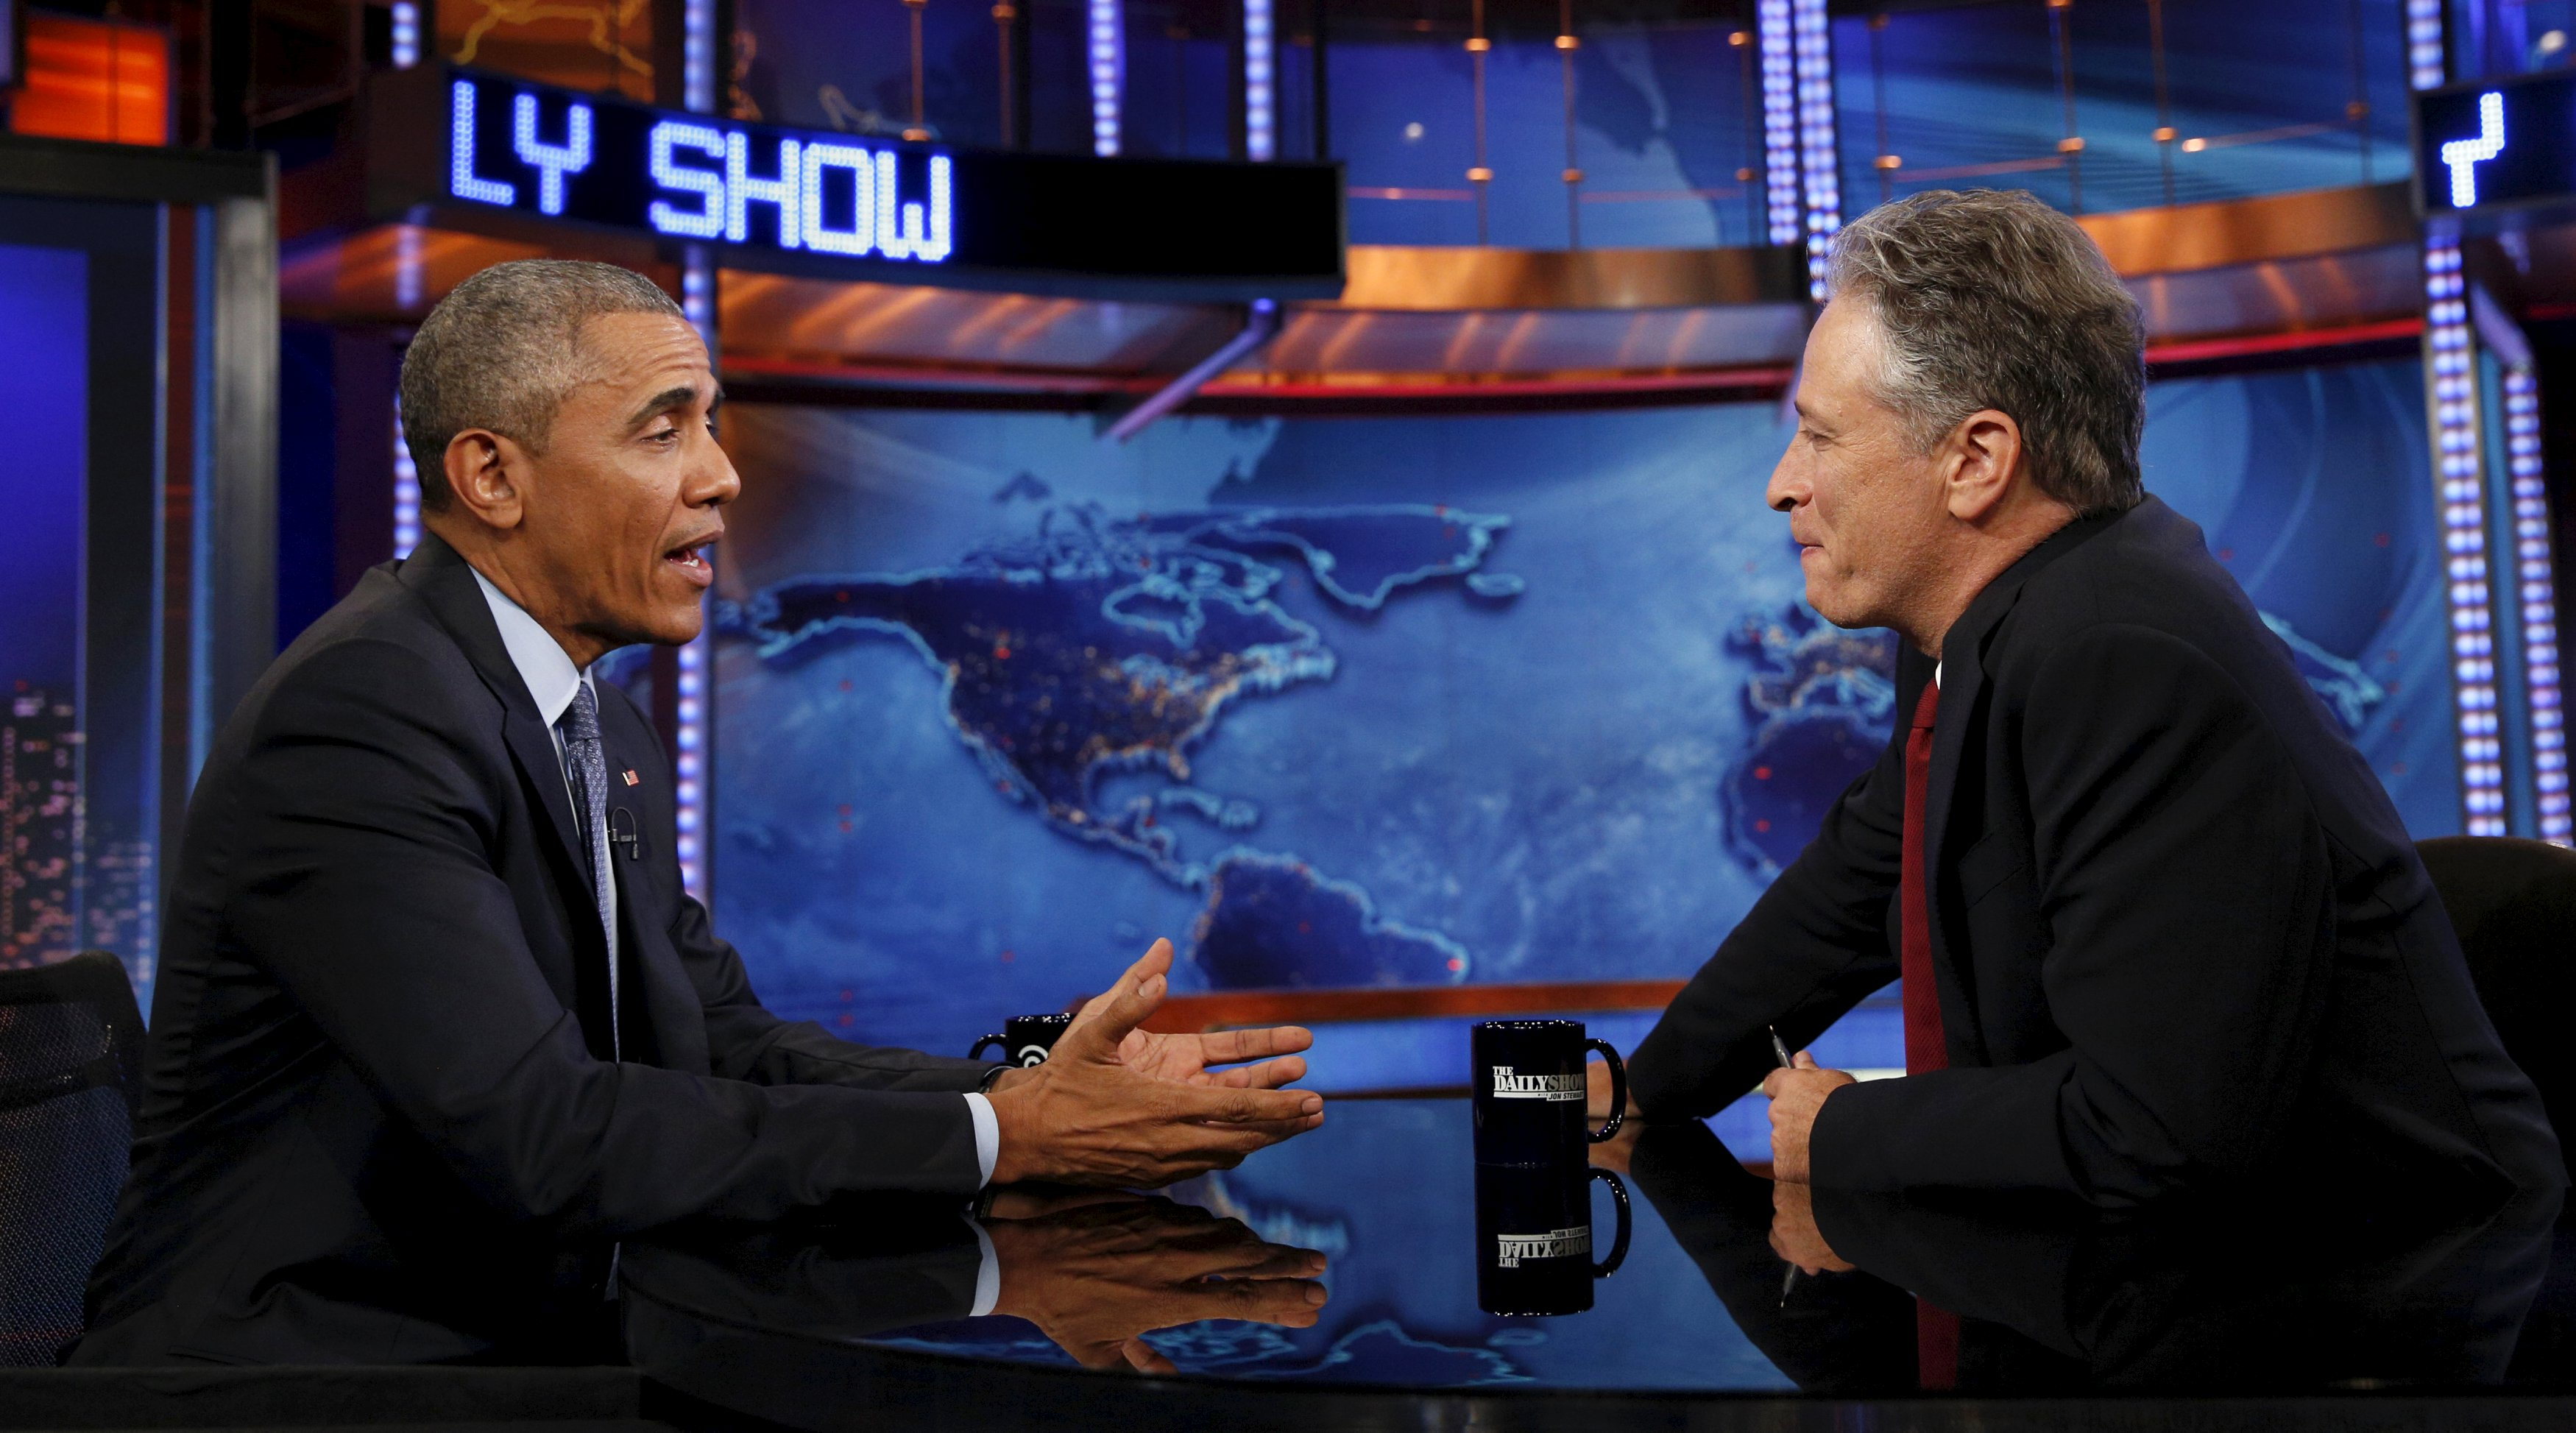 Obama appears on The Daily Show with Jon Stewart in New York